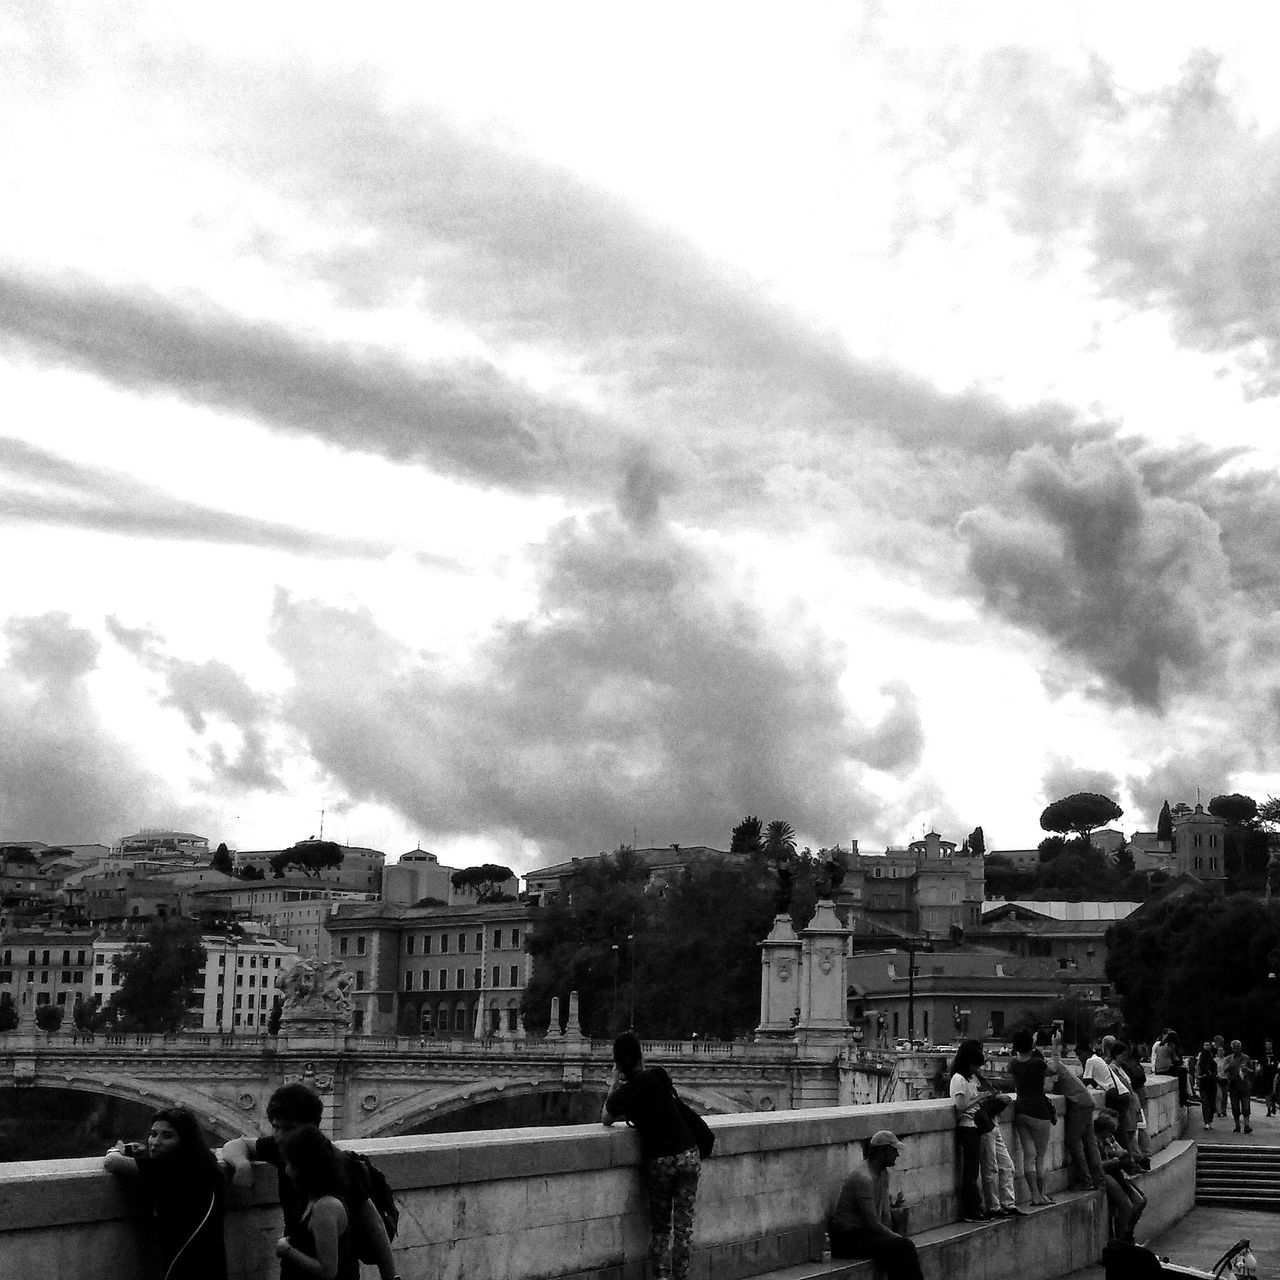 Sky Cloud - Sky Architecture Travel Destinations Outdoors Large Group Of People Rome Roma Black&white Blackandwhite Blackandwhite Photography Black & White Black And White Black And White Photography Blackandwhitephotography Black And White Collection  LG G3 Photography LGg3photography LGG3 High Contrast Monocrome EyeEmNewHere